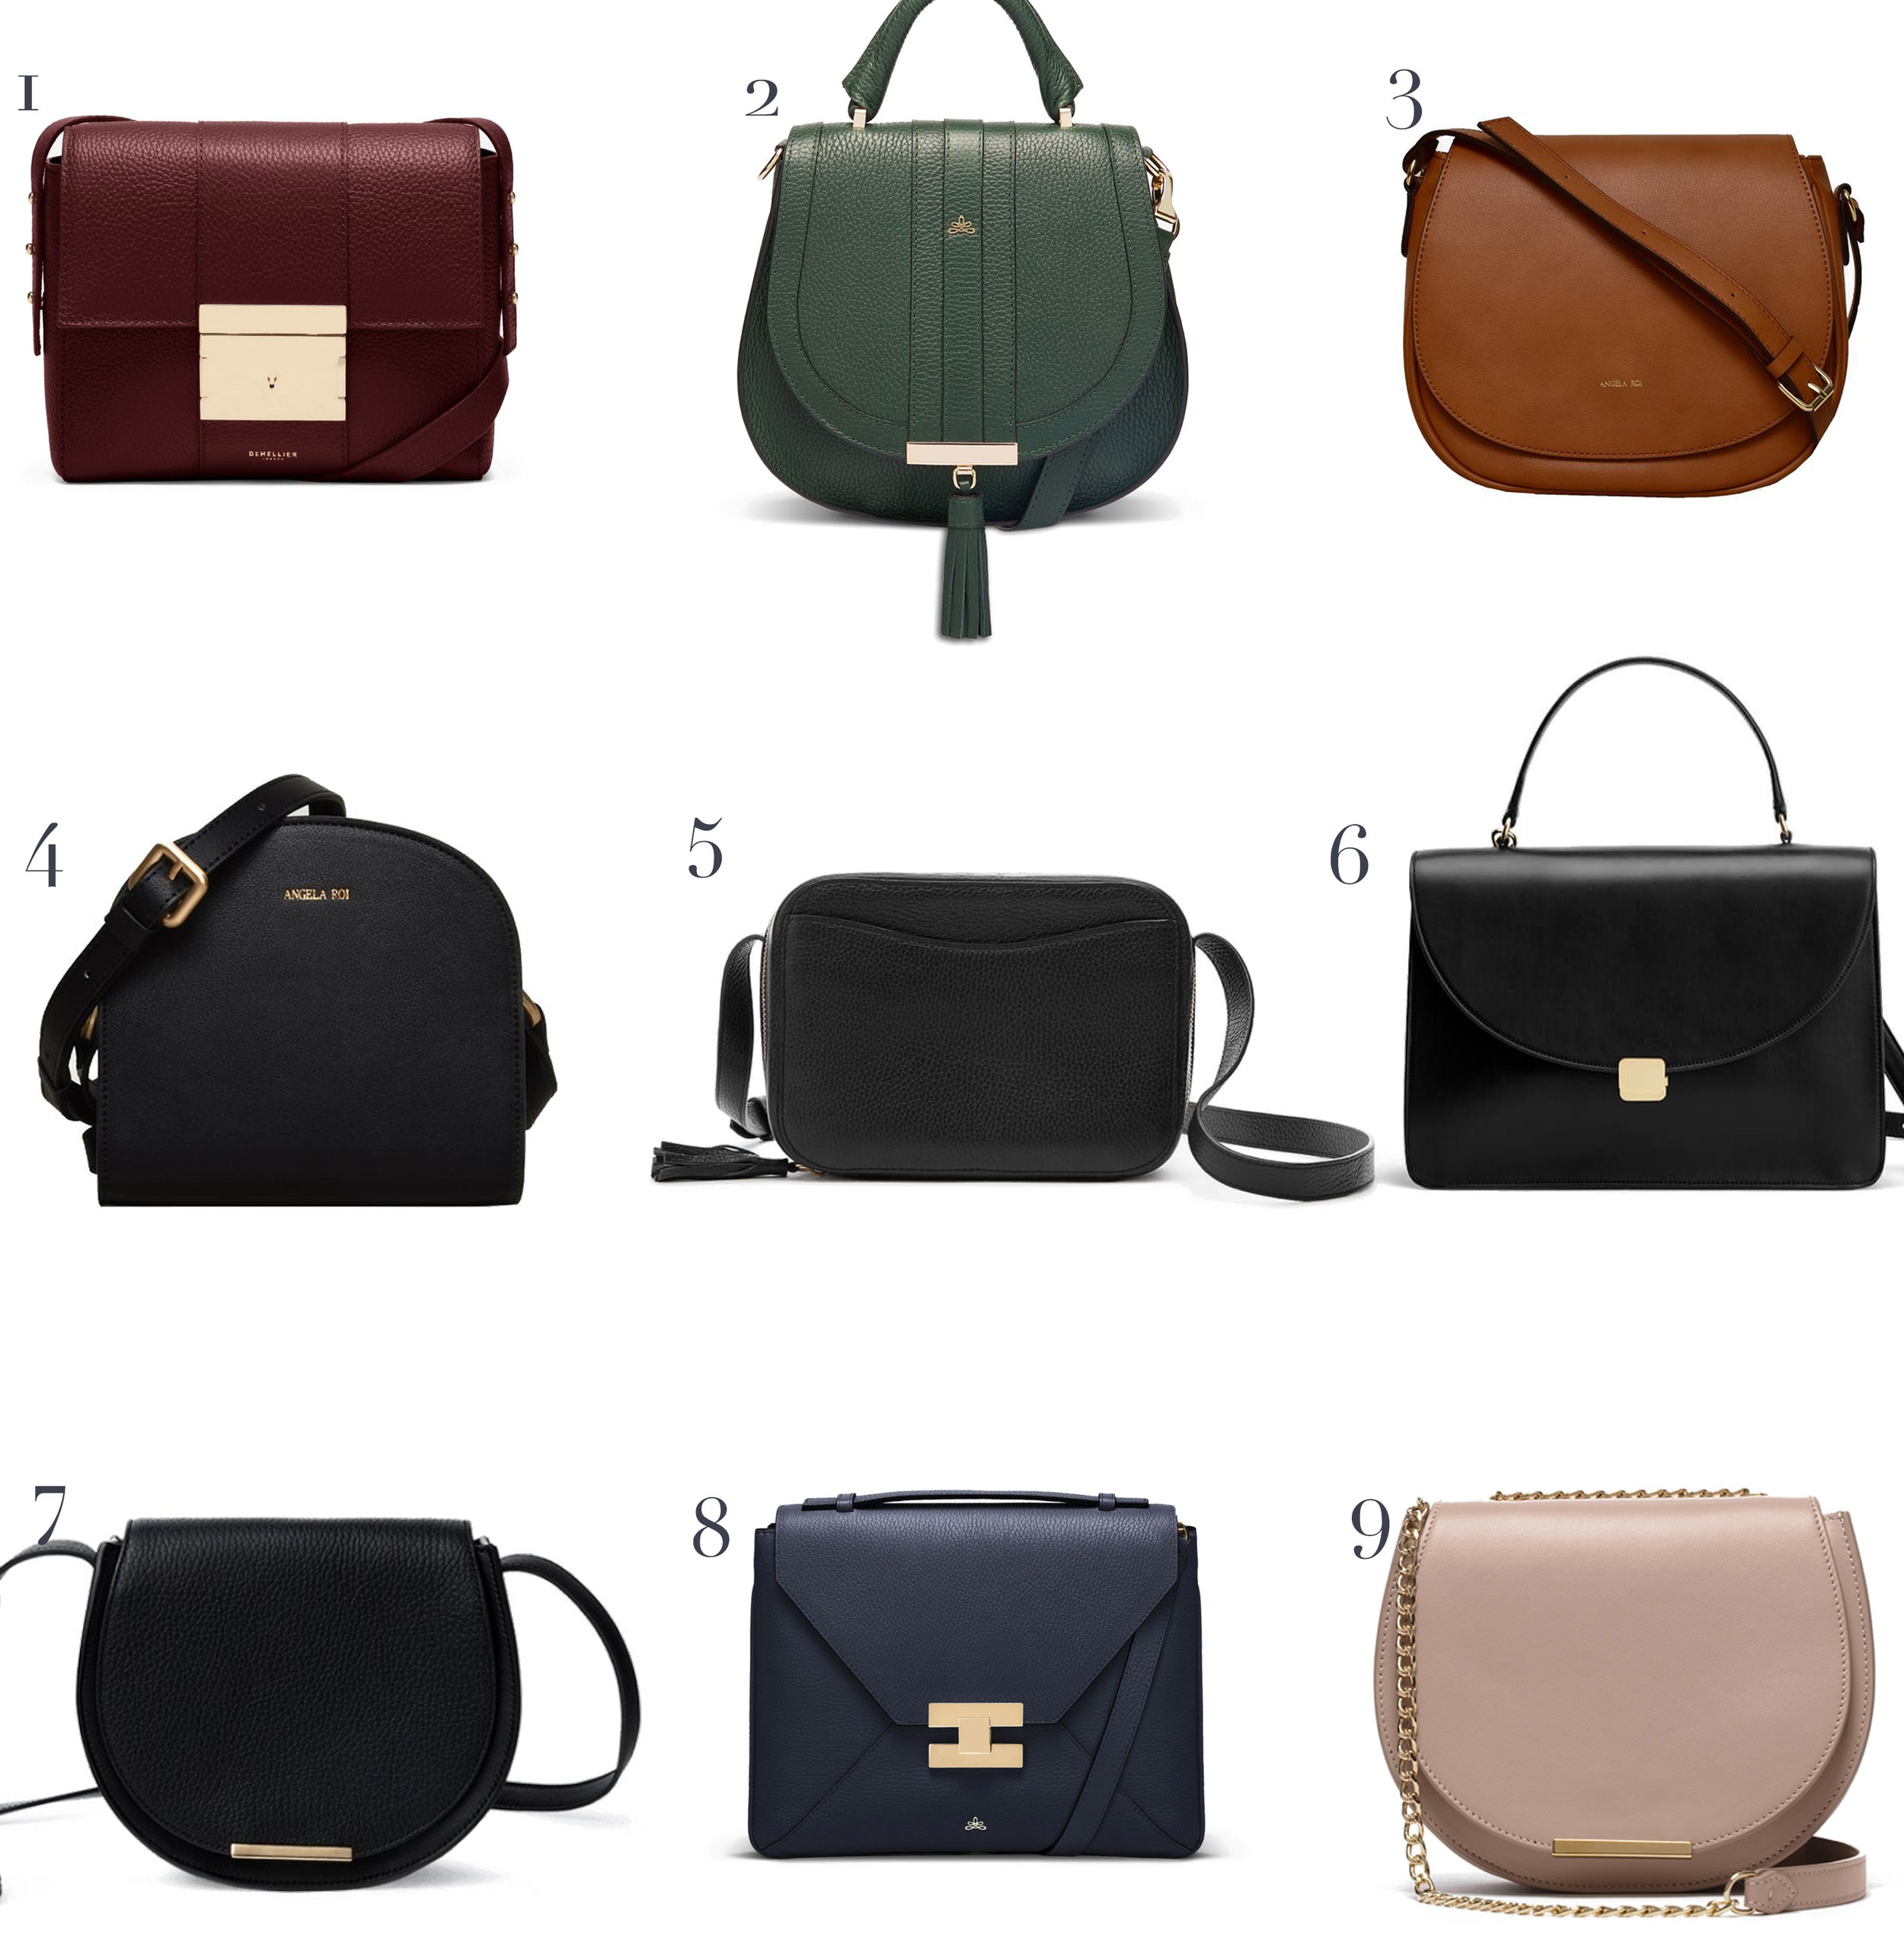 crossbody-bag-cuyana-purse-angela-roi-demellier-travel-wardrobe-how-to-pack-for-europe__.jpg